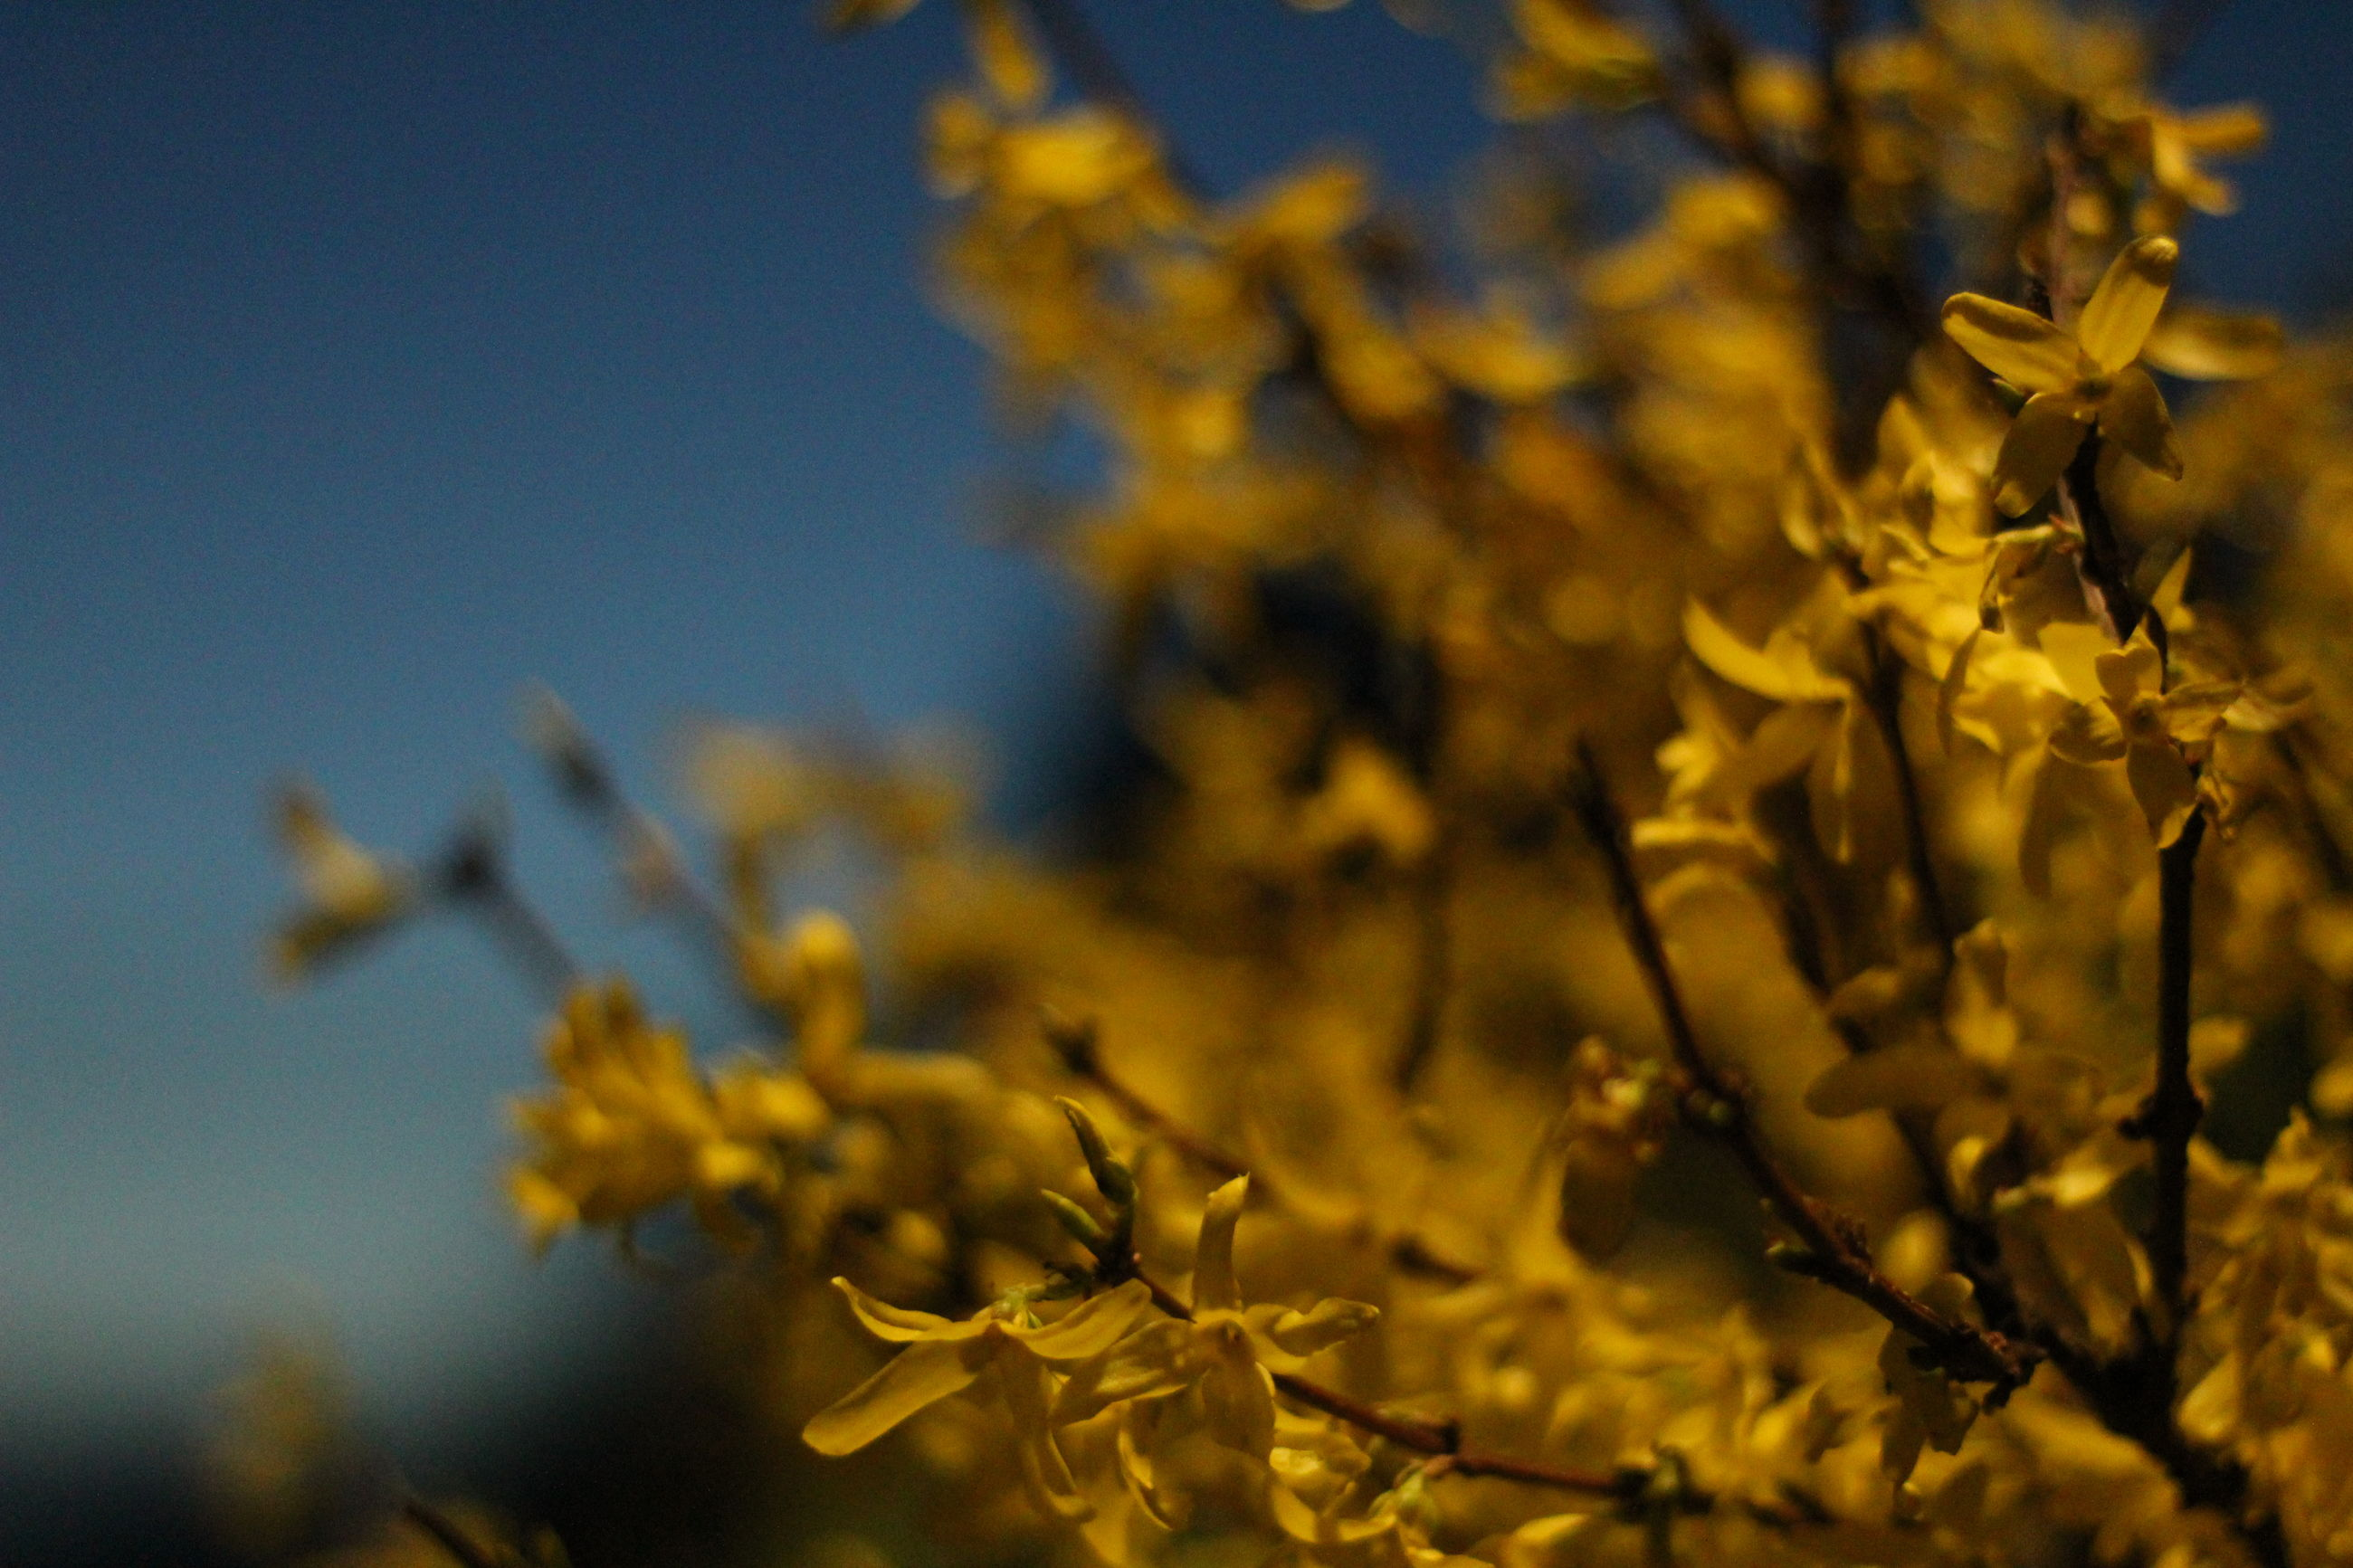 CLOSE-UP OF YELLOW FLOWERING PLANTS AGAINST CLEAR SKY